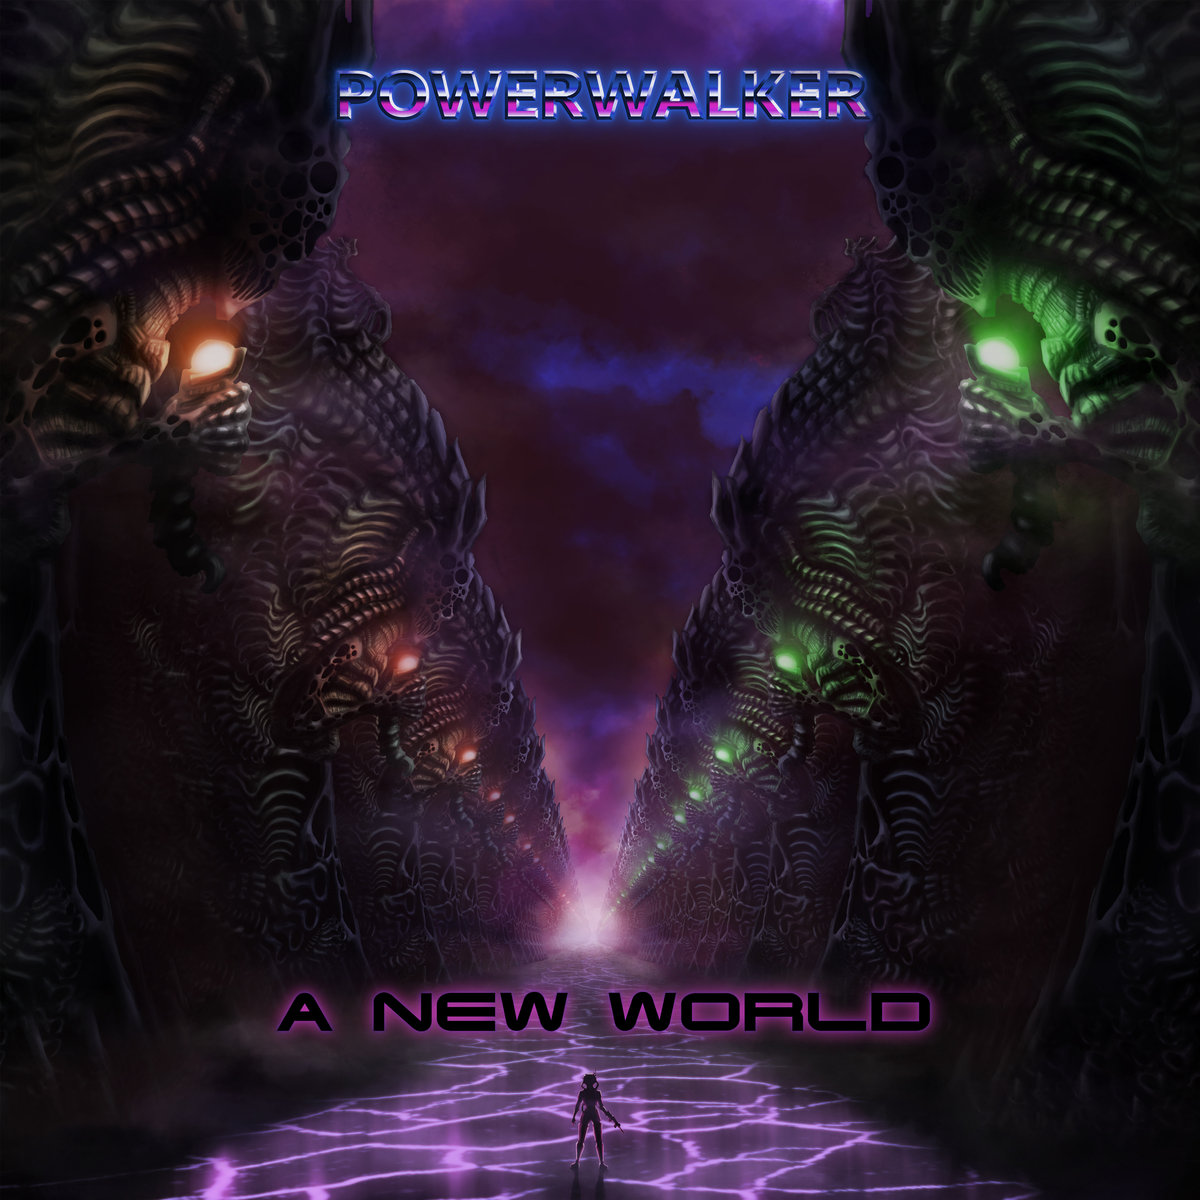 The PowerwalkerA New World-The Powerwalker-Art